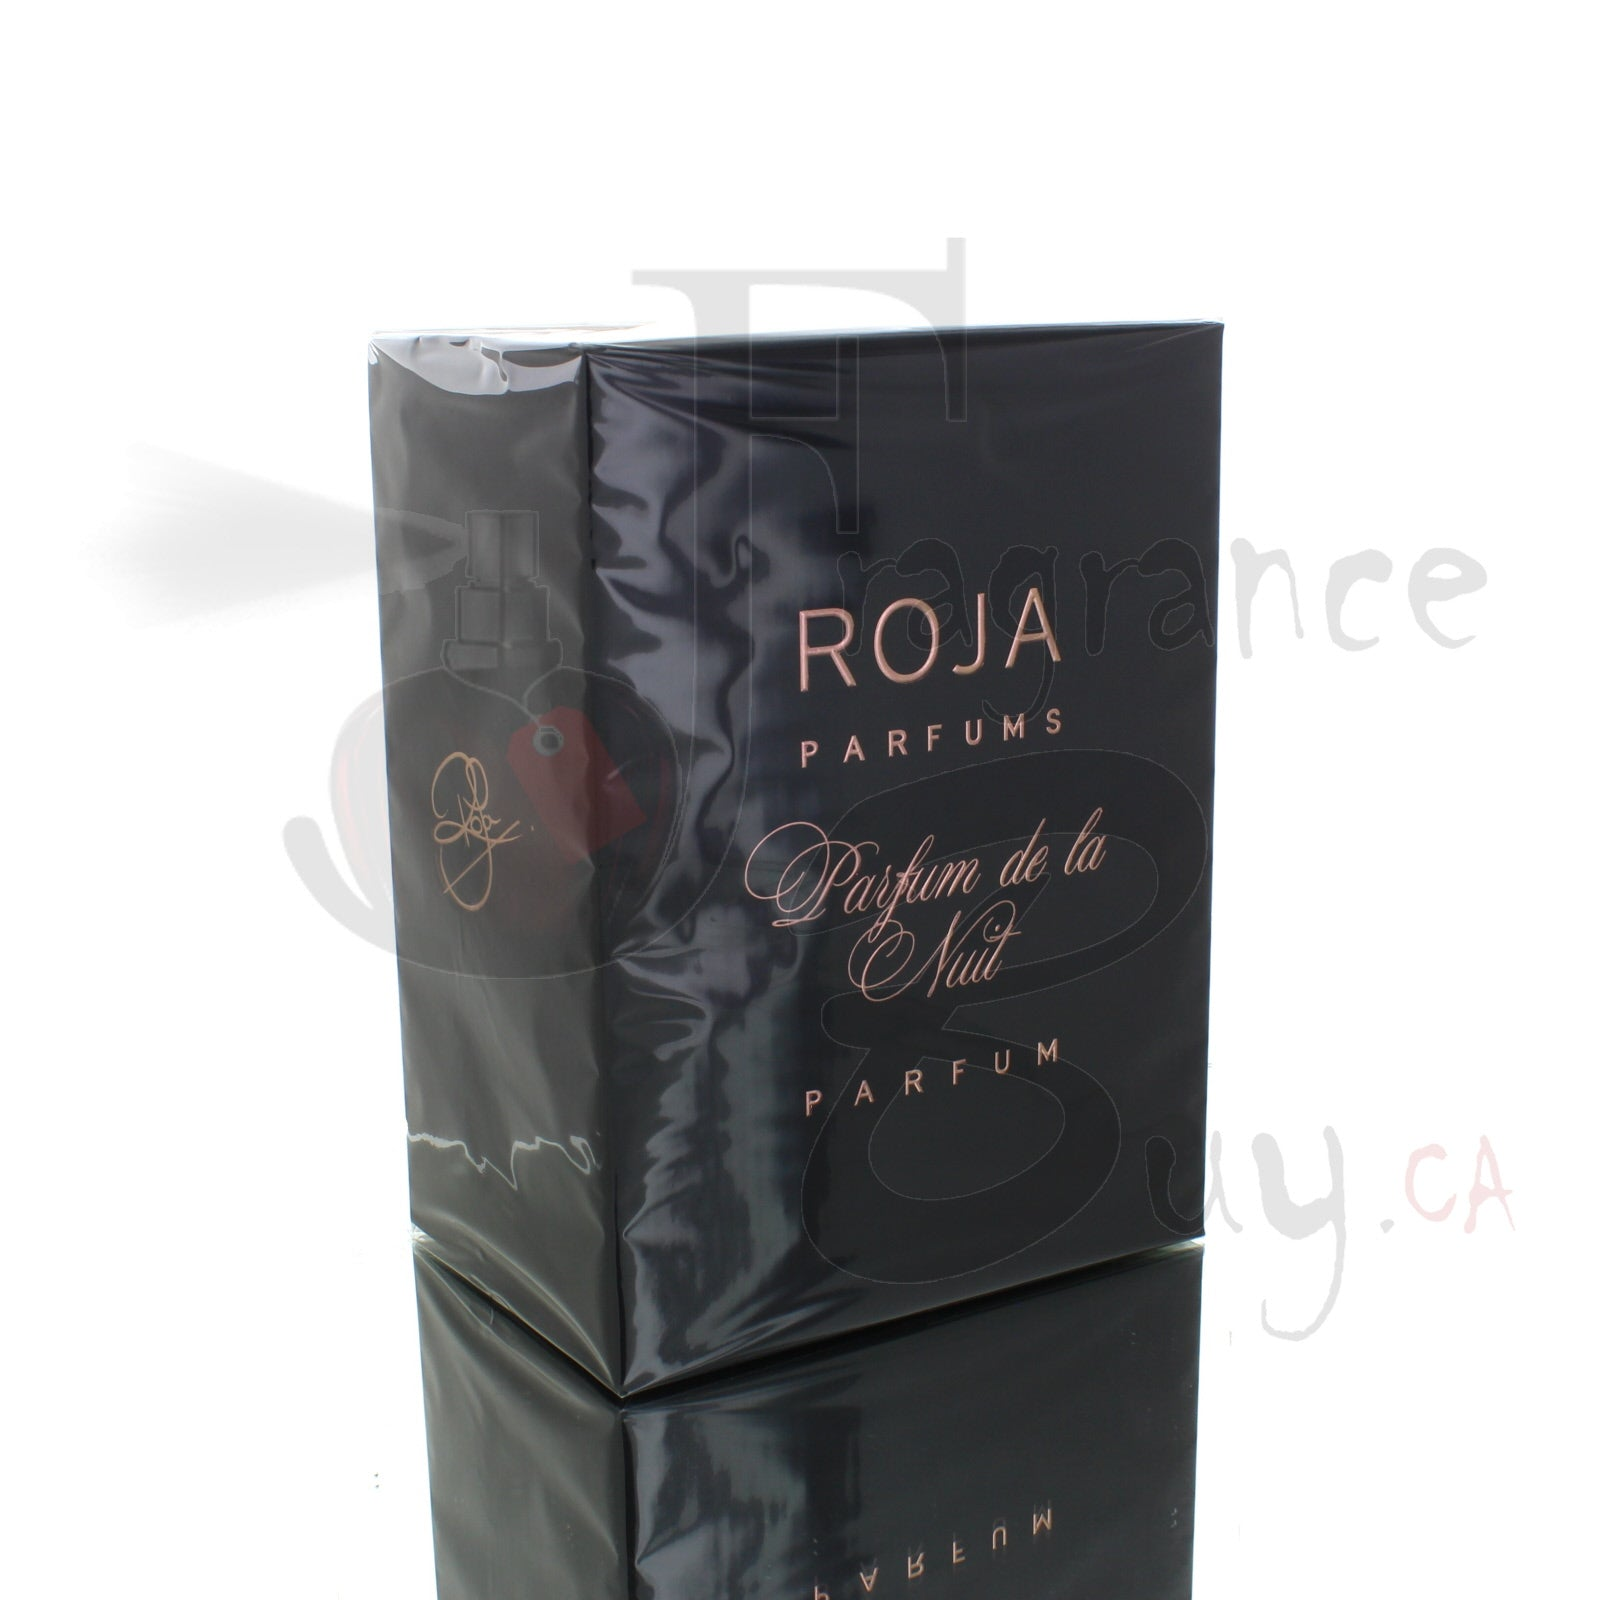 Roja Parfums La Nuit 3 For Man/Woman